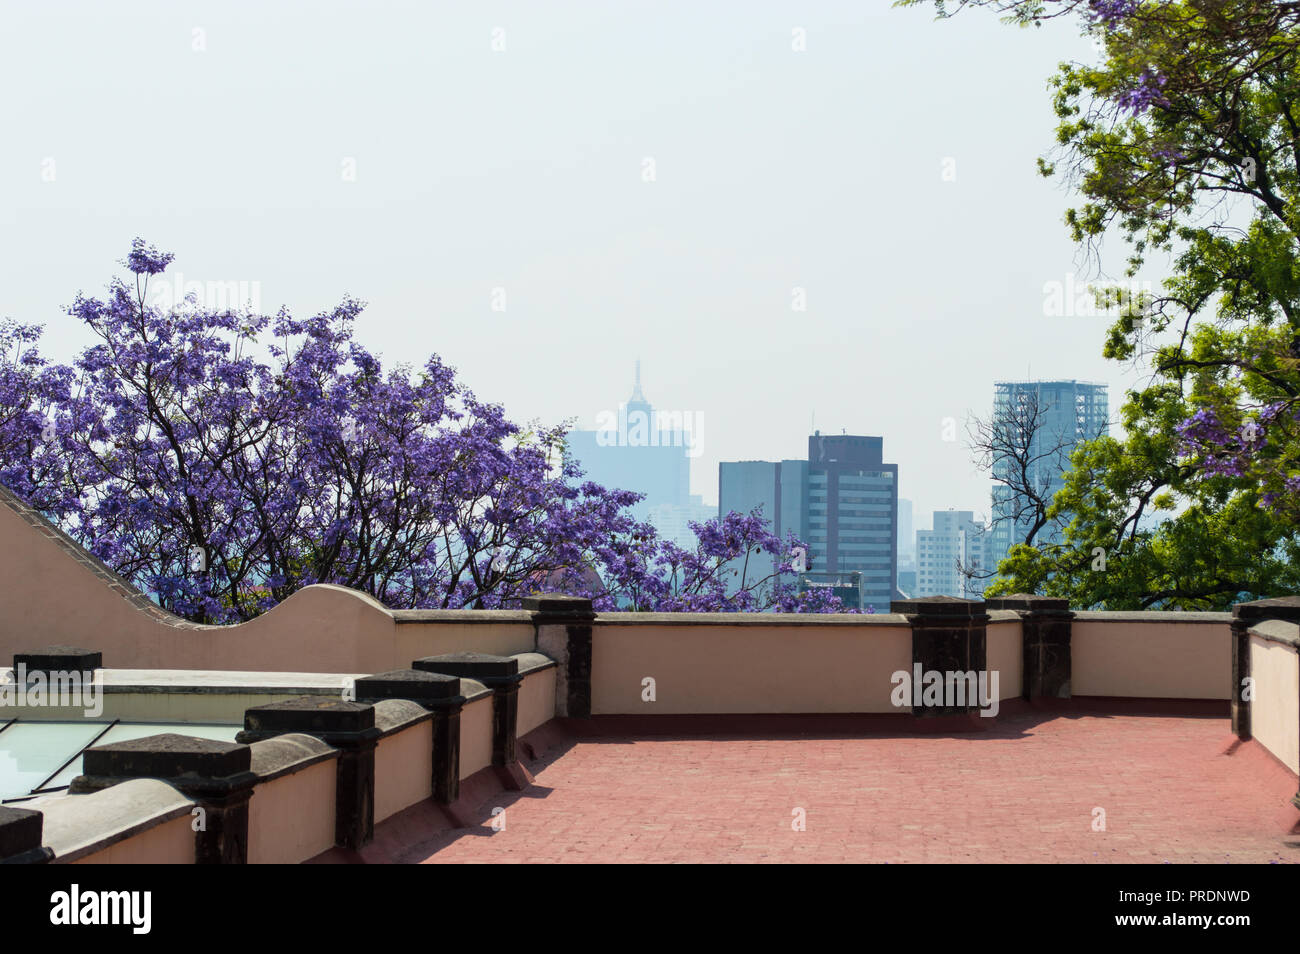 View from top of Chapultepec castle with city Skyline including the World Trade Center. Jacaranda trees and grey sky,  Mexico City. - Stock Image